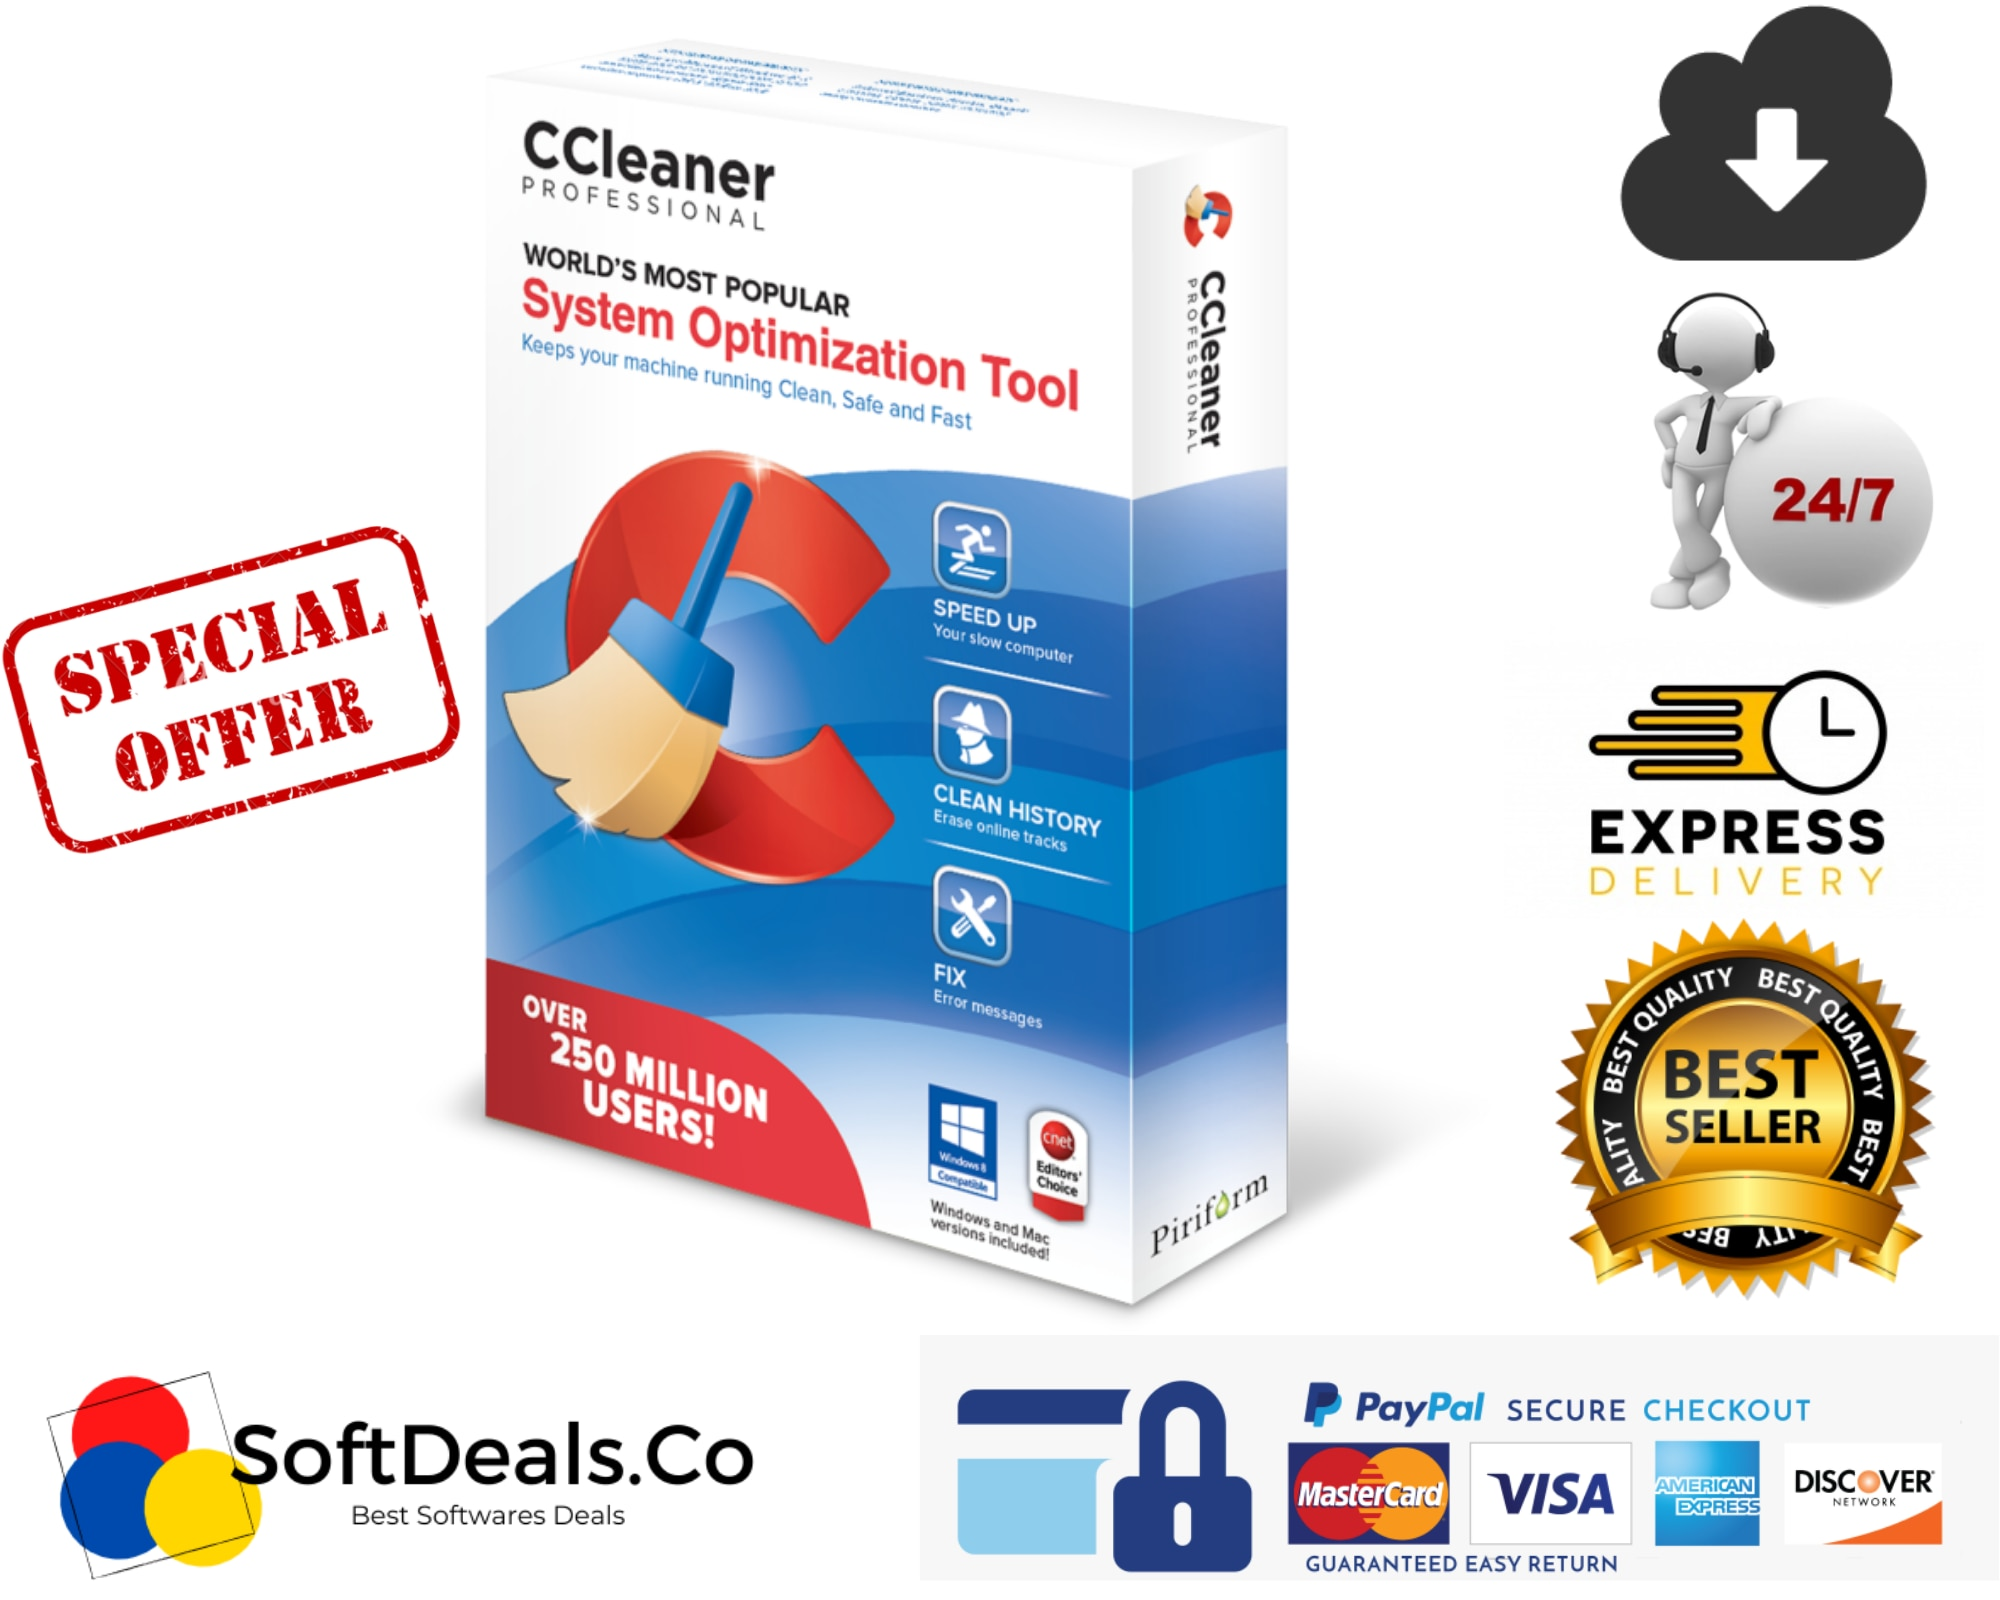 Ccleaner Pro Plus Software For Win10, Win8, Win7 Ccleanerpro, Professional.